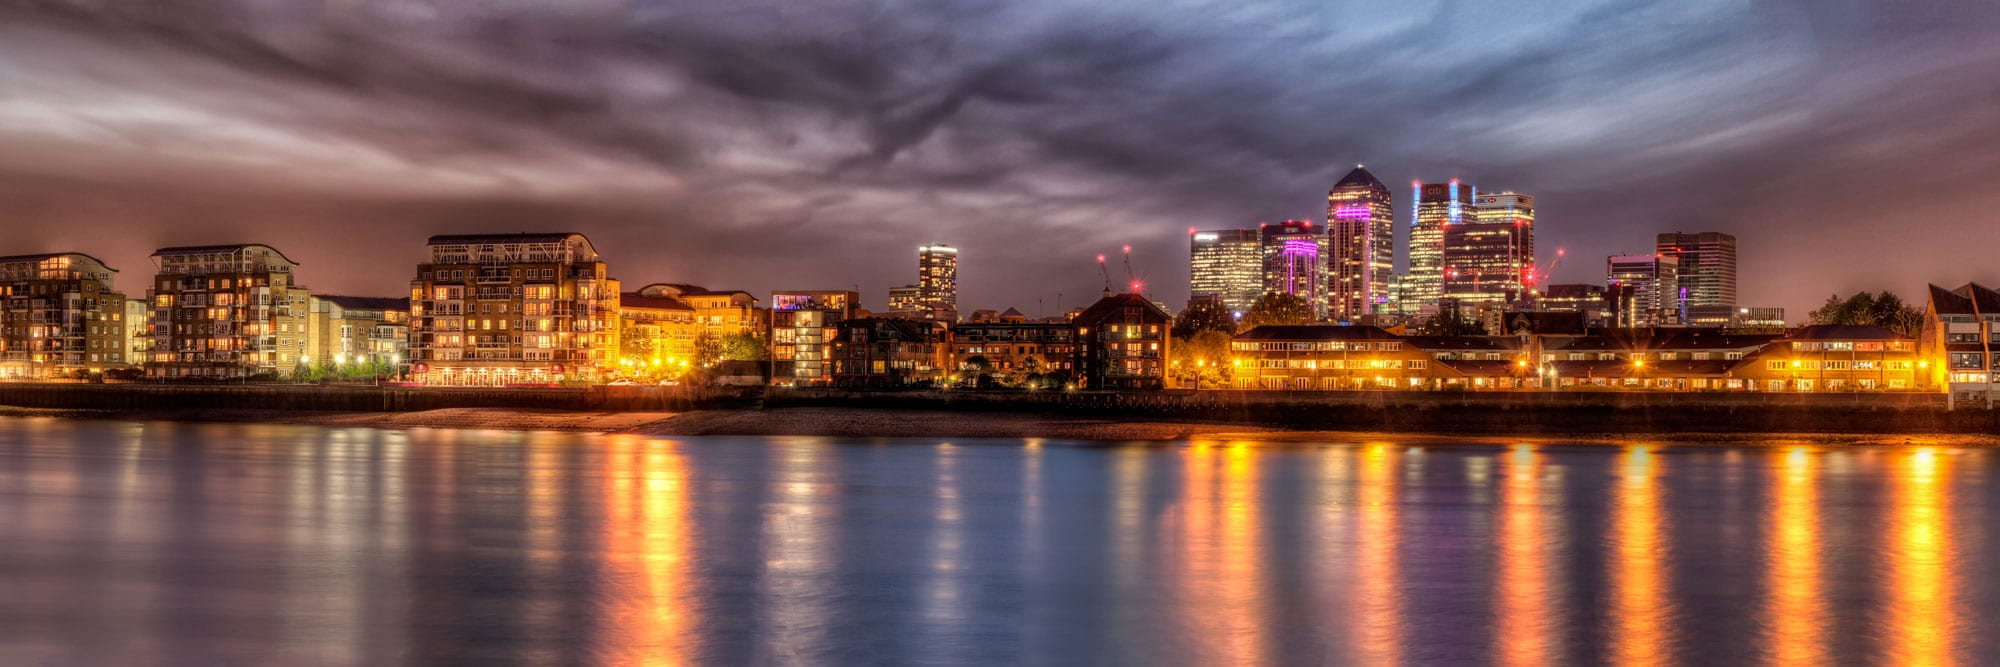 London Docklands and Skyline in a Night Panorama